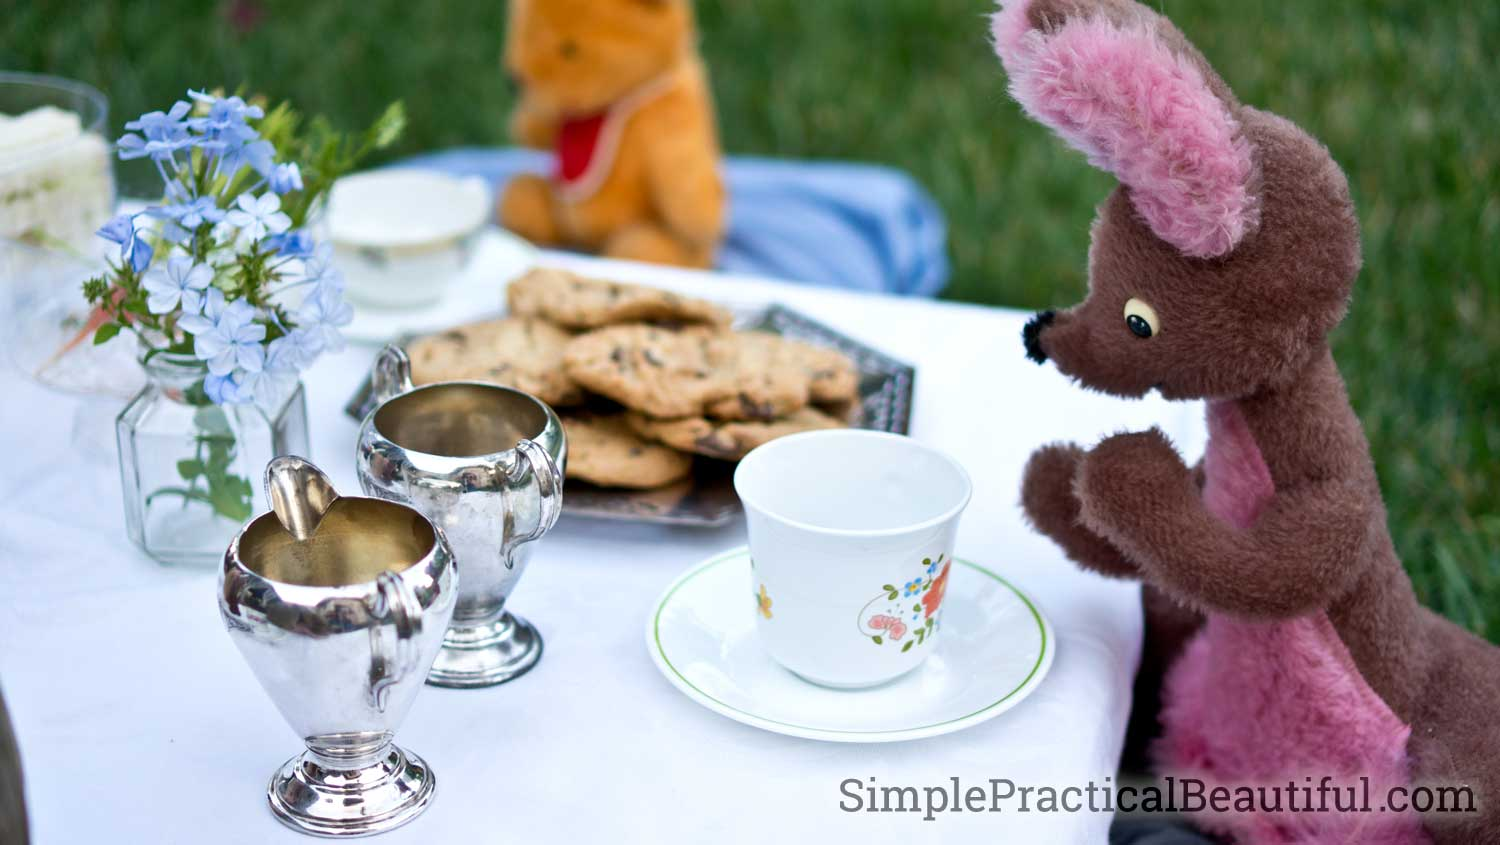 Kanga and Pooh are ready to take tea at this Christopher Robin-inspired tea party